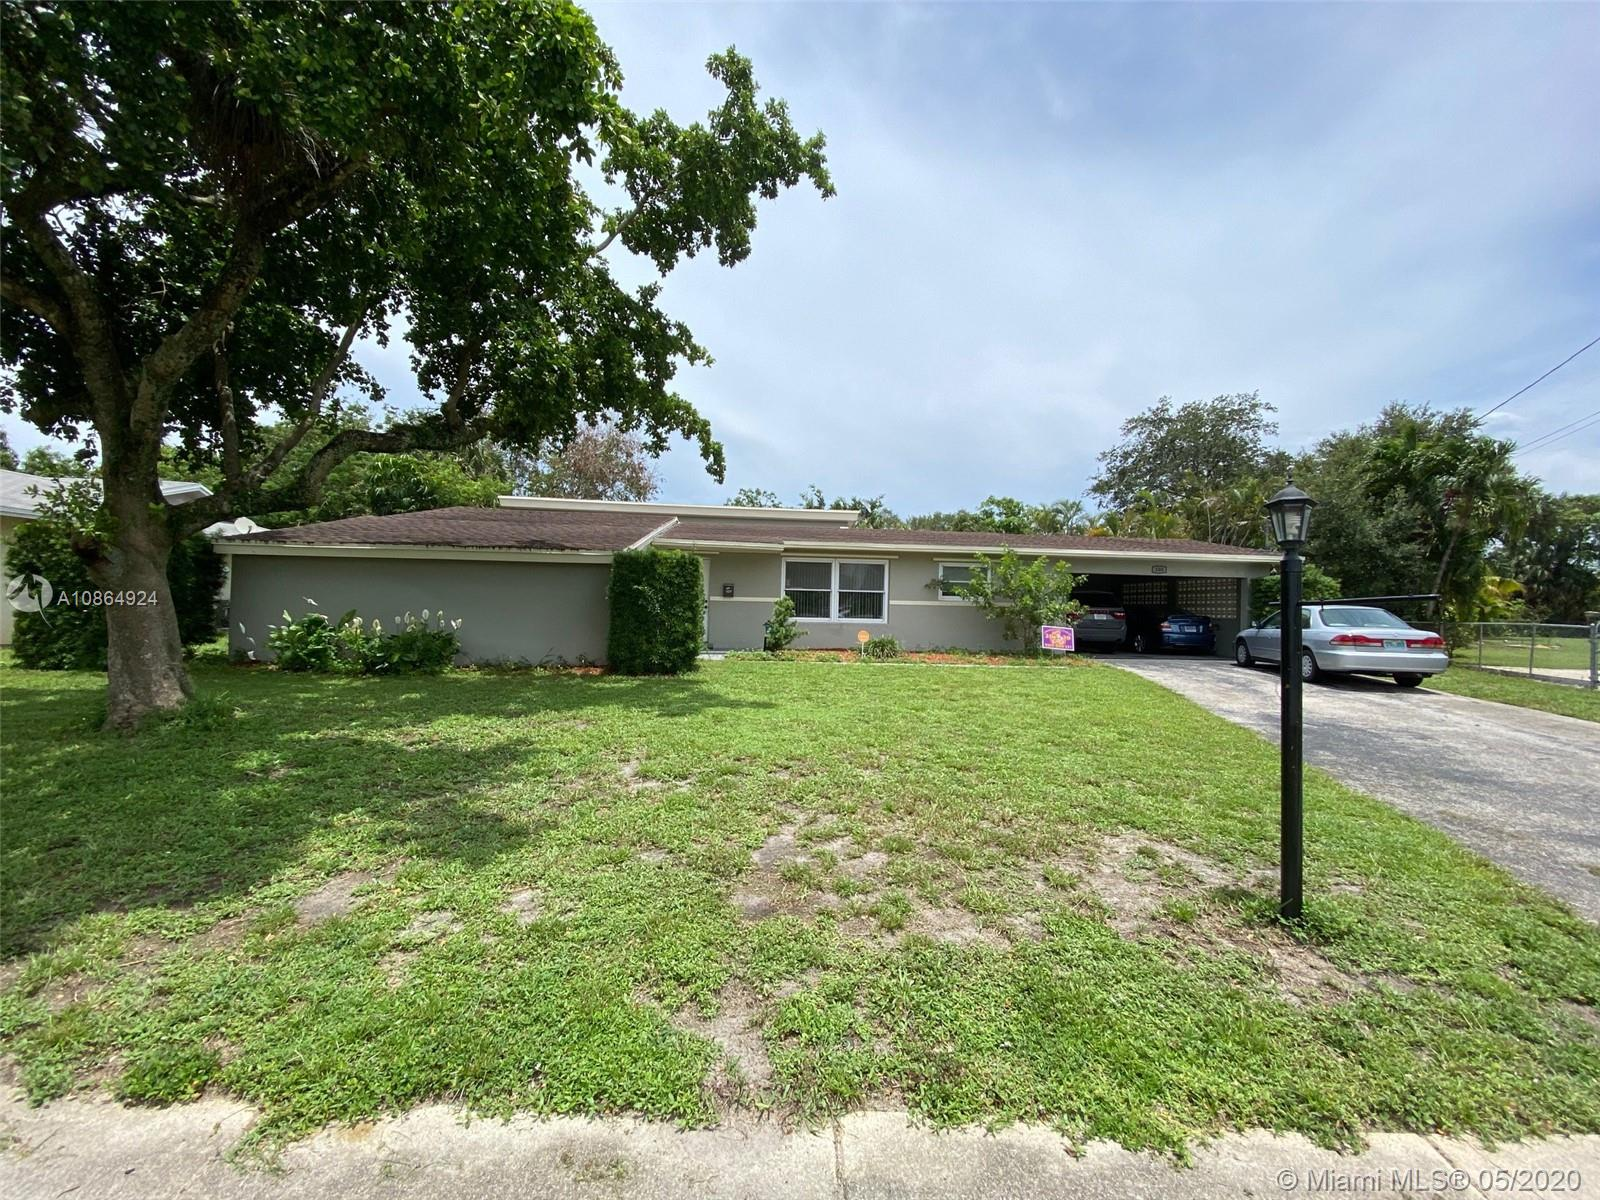 Spacious 5/2 open concept home with a pool in the heart of Plantation. Property sits in an oversize lot and is close to major roads and expressways. If you are looking for a house that you can make your lifetime home, this is the one!